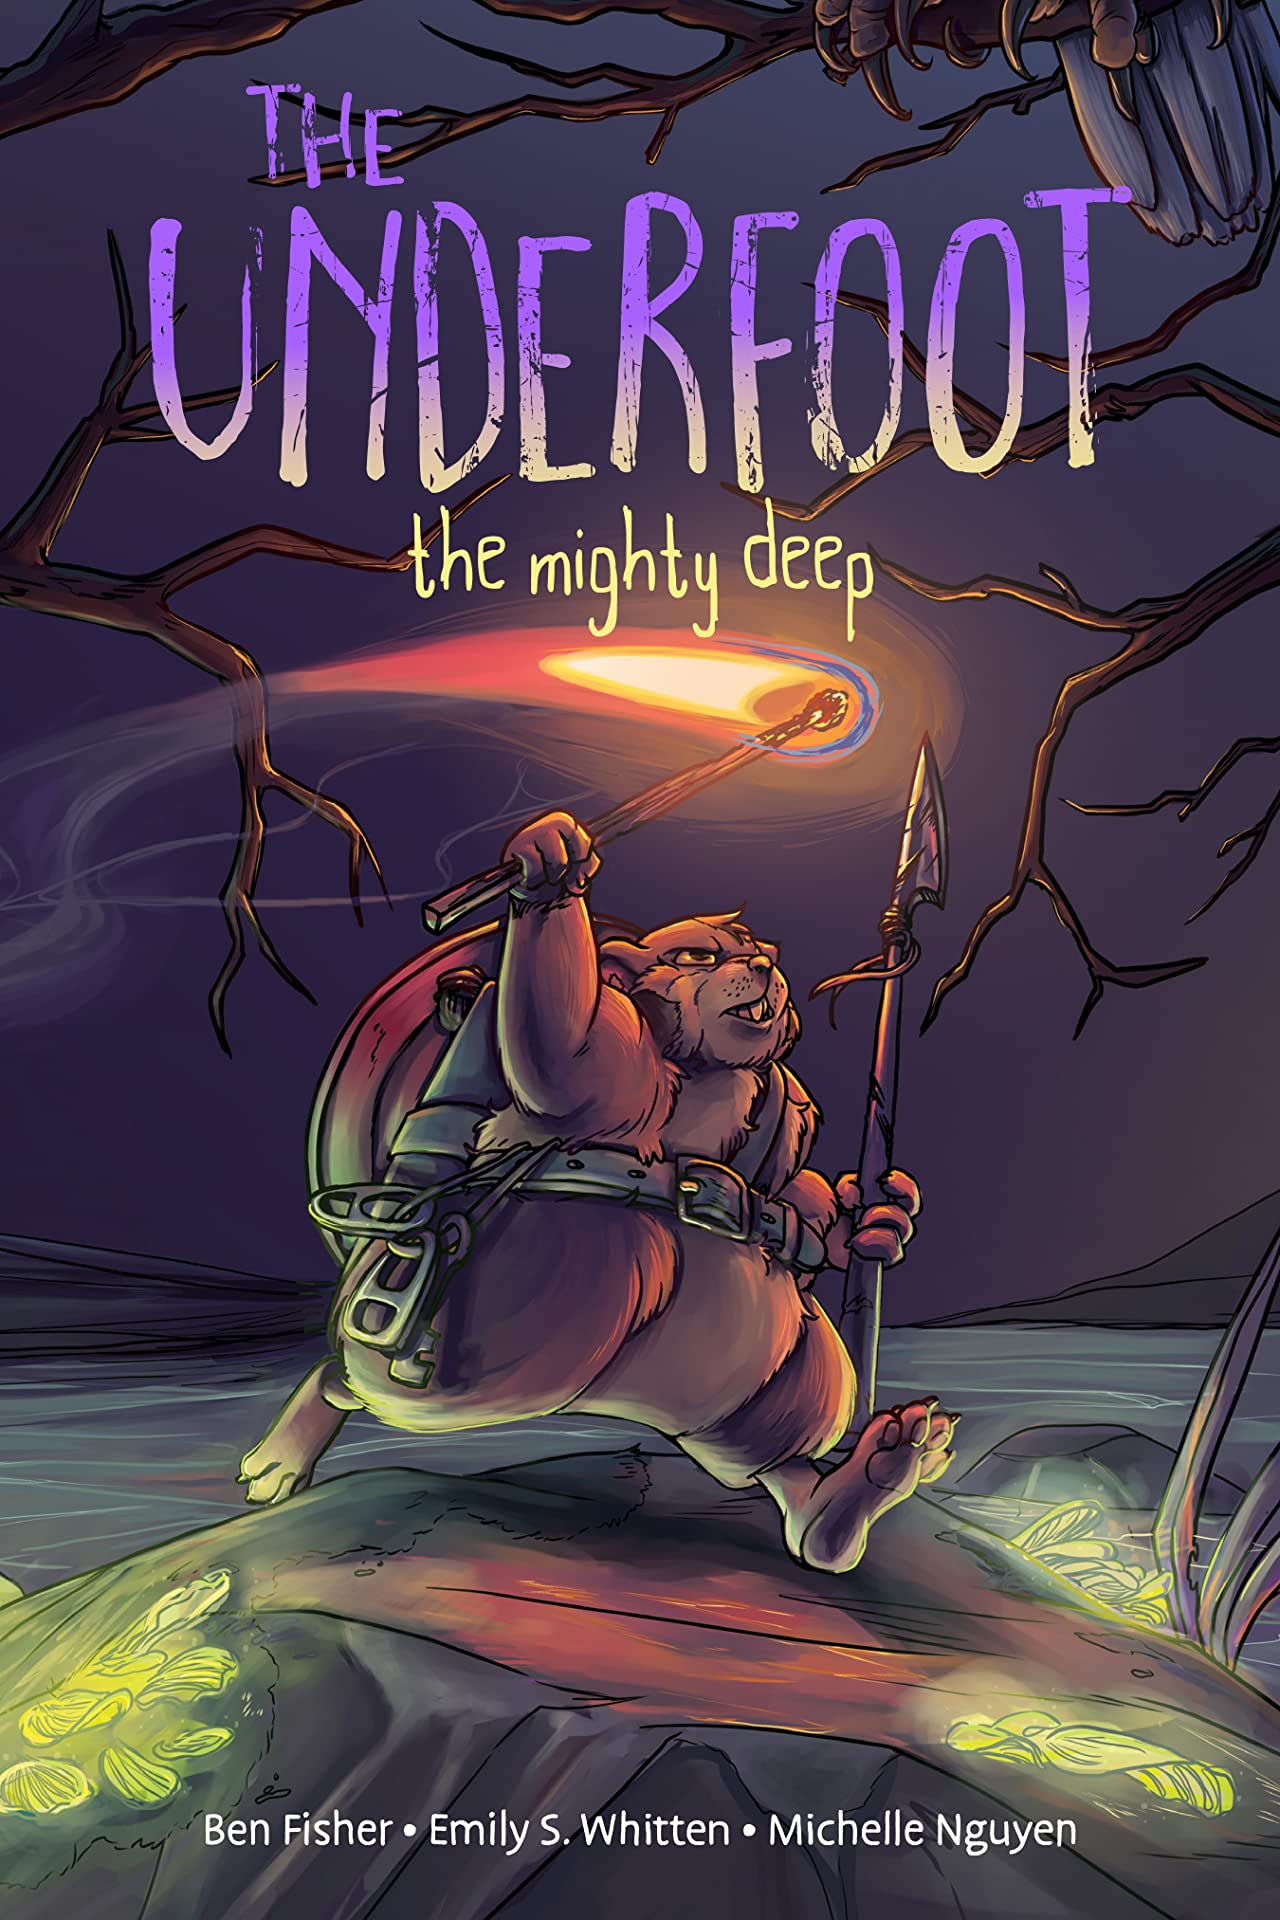 The Underfoot Vol. 1